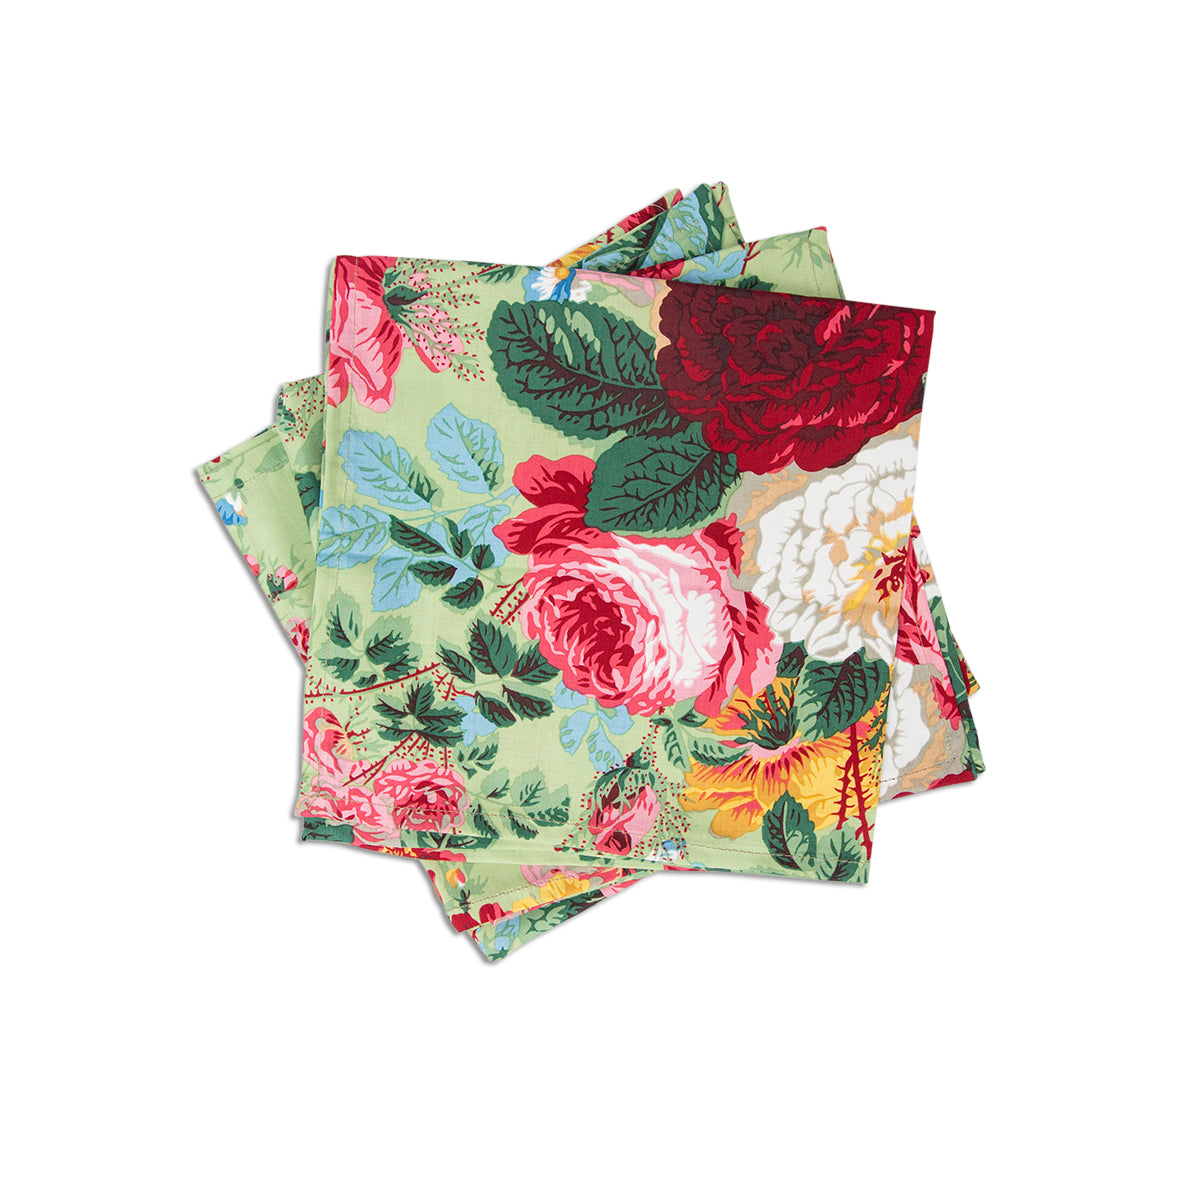 Winter Greenbrier Napkins